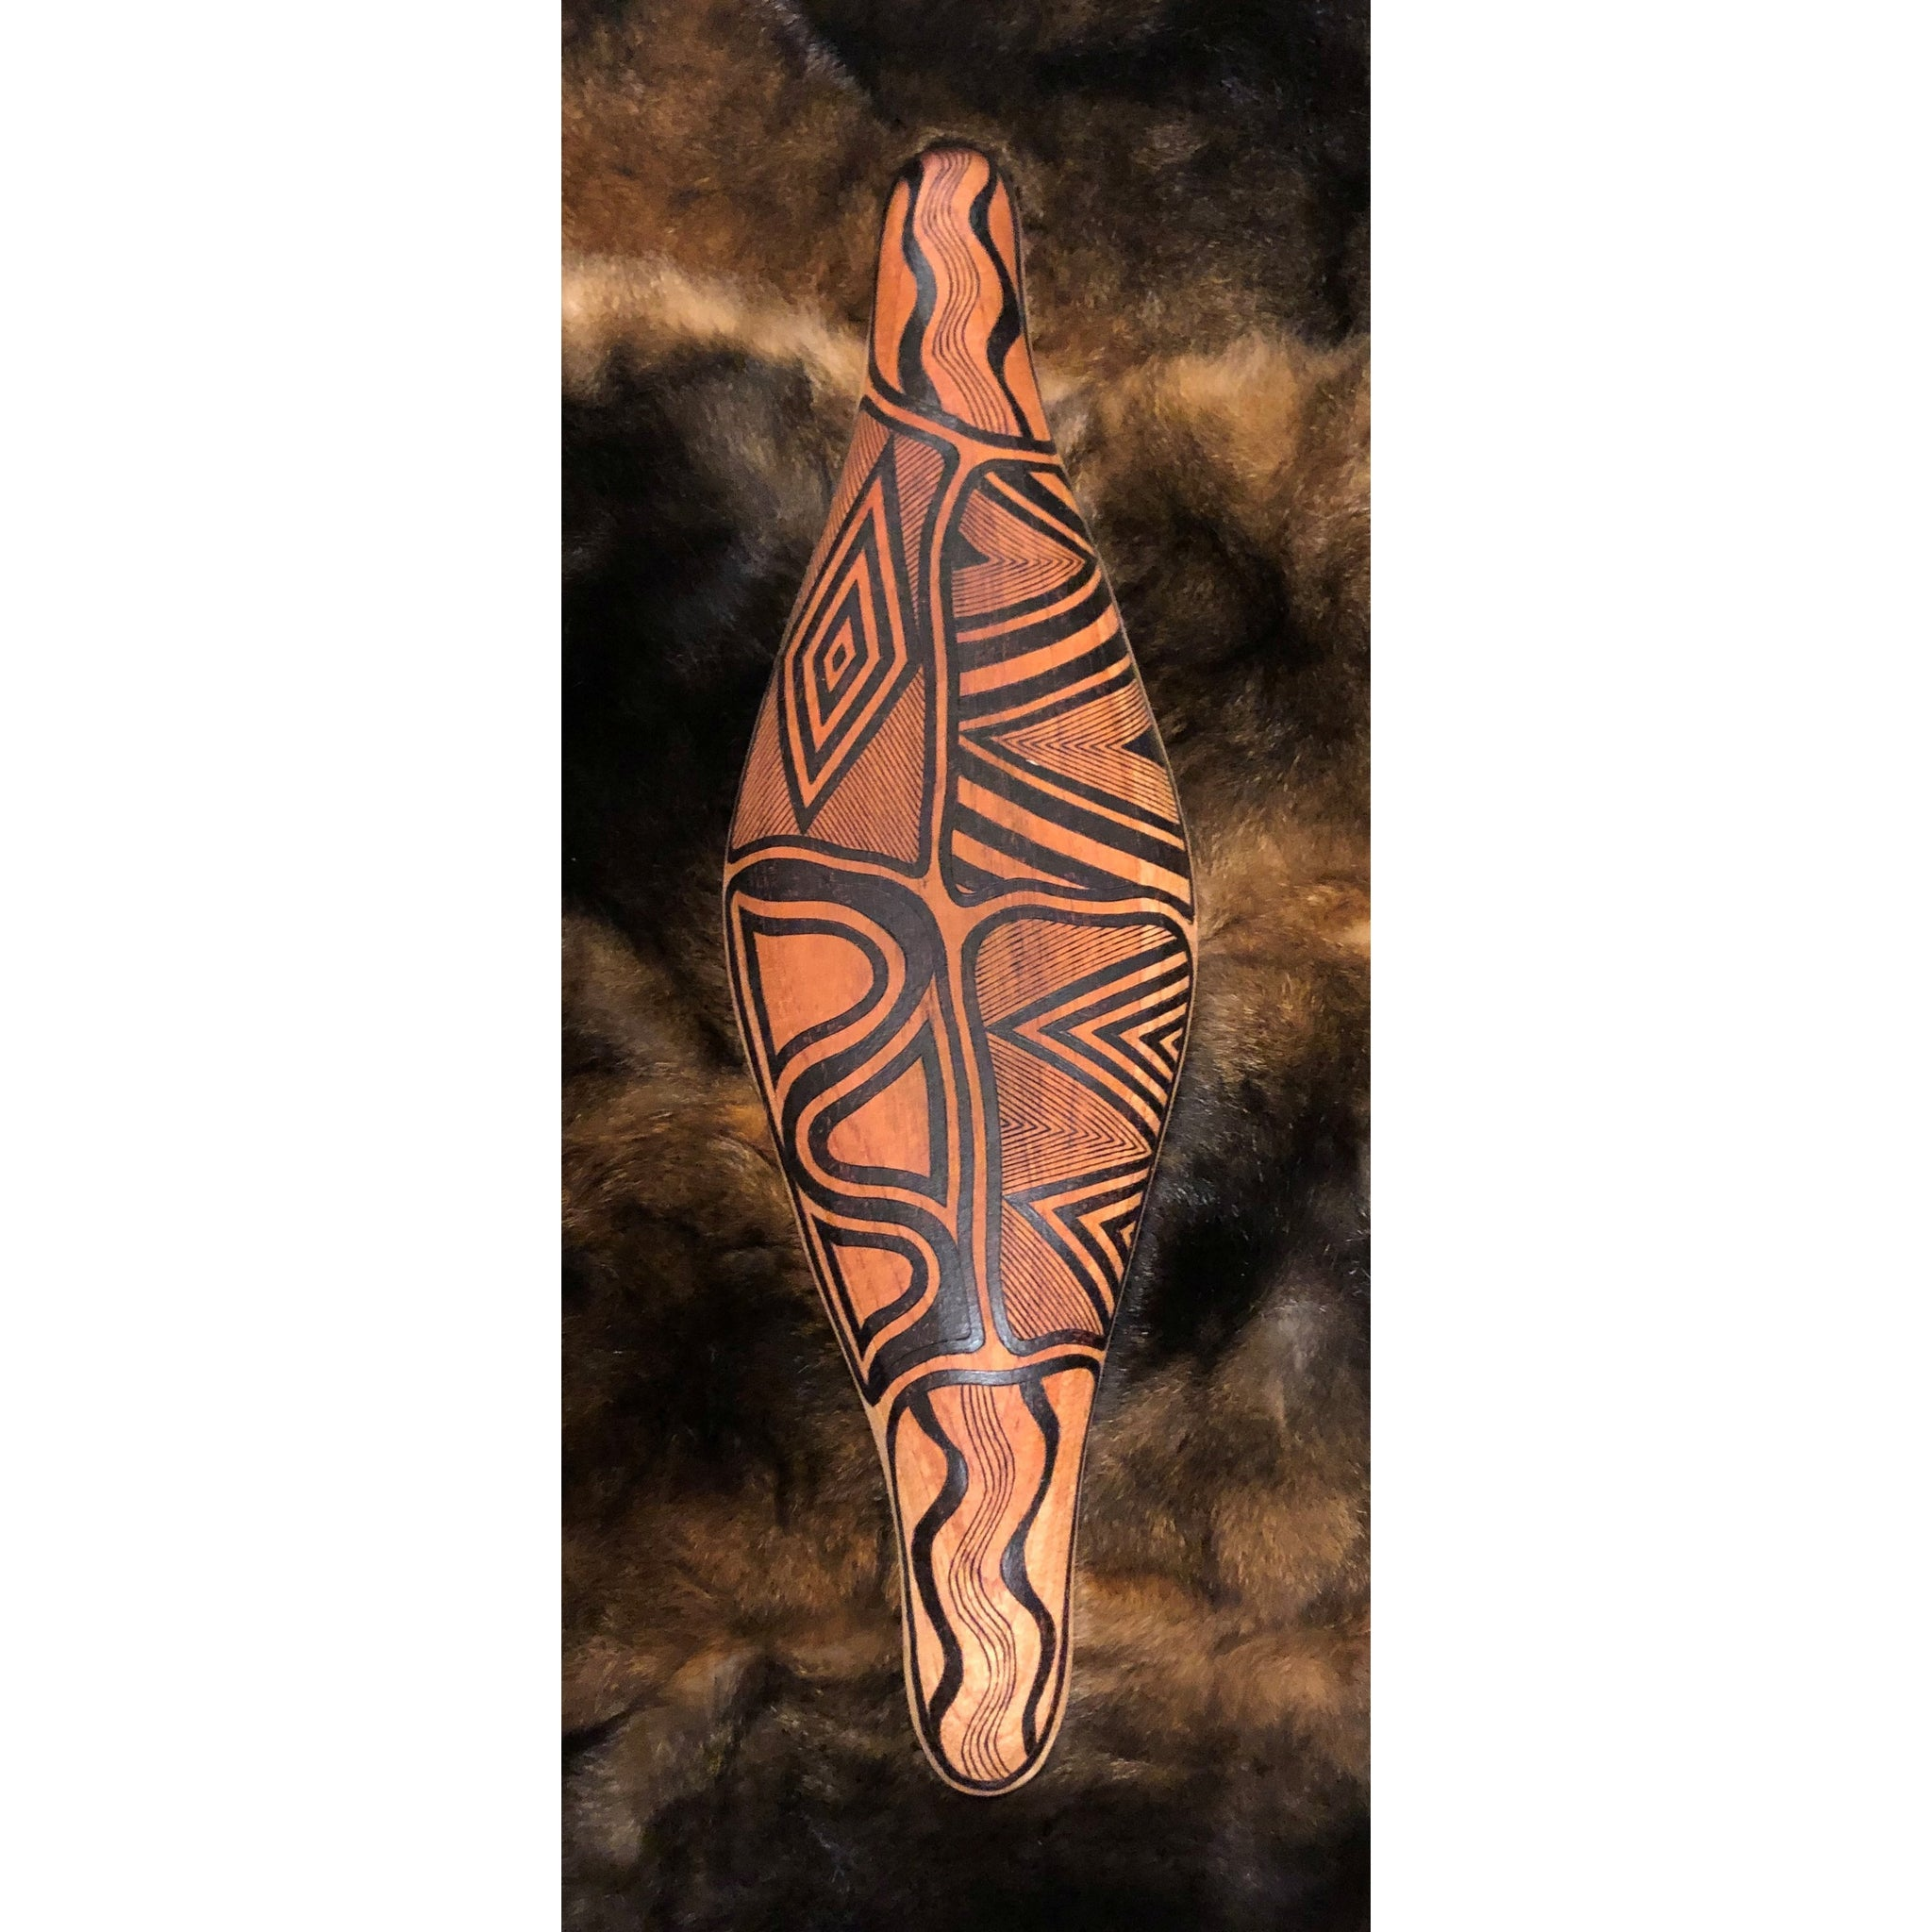 PARRYING SHIELD SMALL WIDE - POSSUM CLOAK DESIGN-Ngarga Warendj